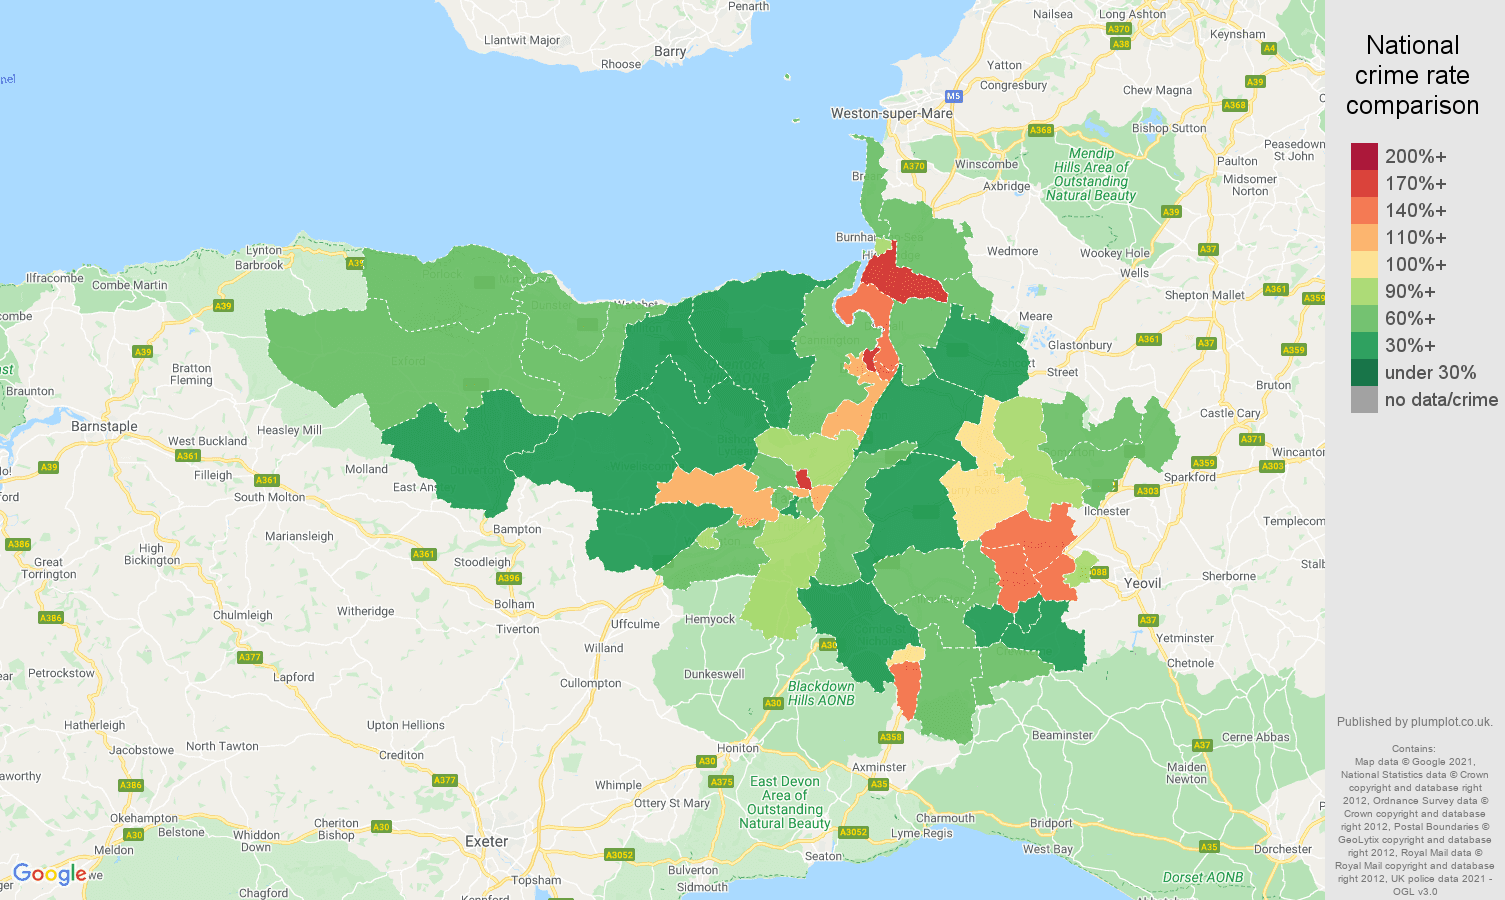 Taunton criminal damage and arson crime rate comparison map